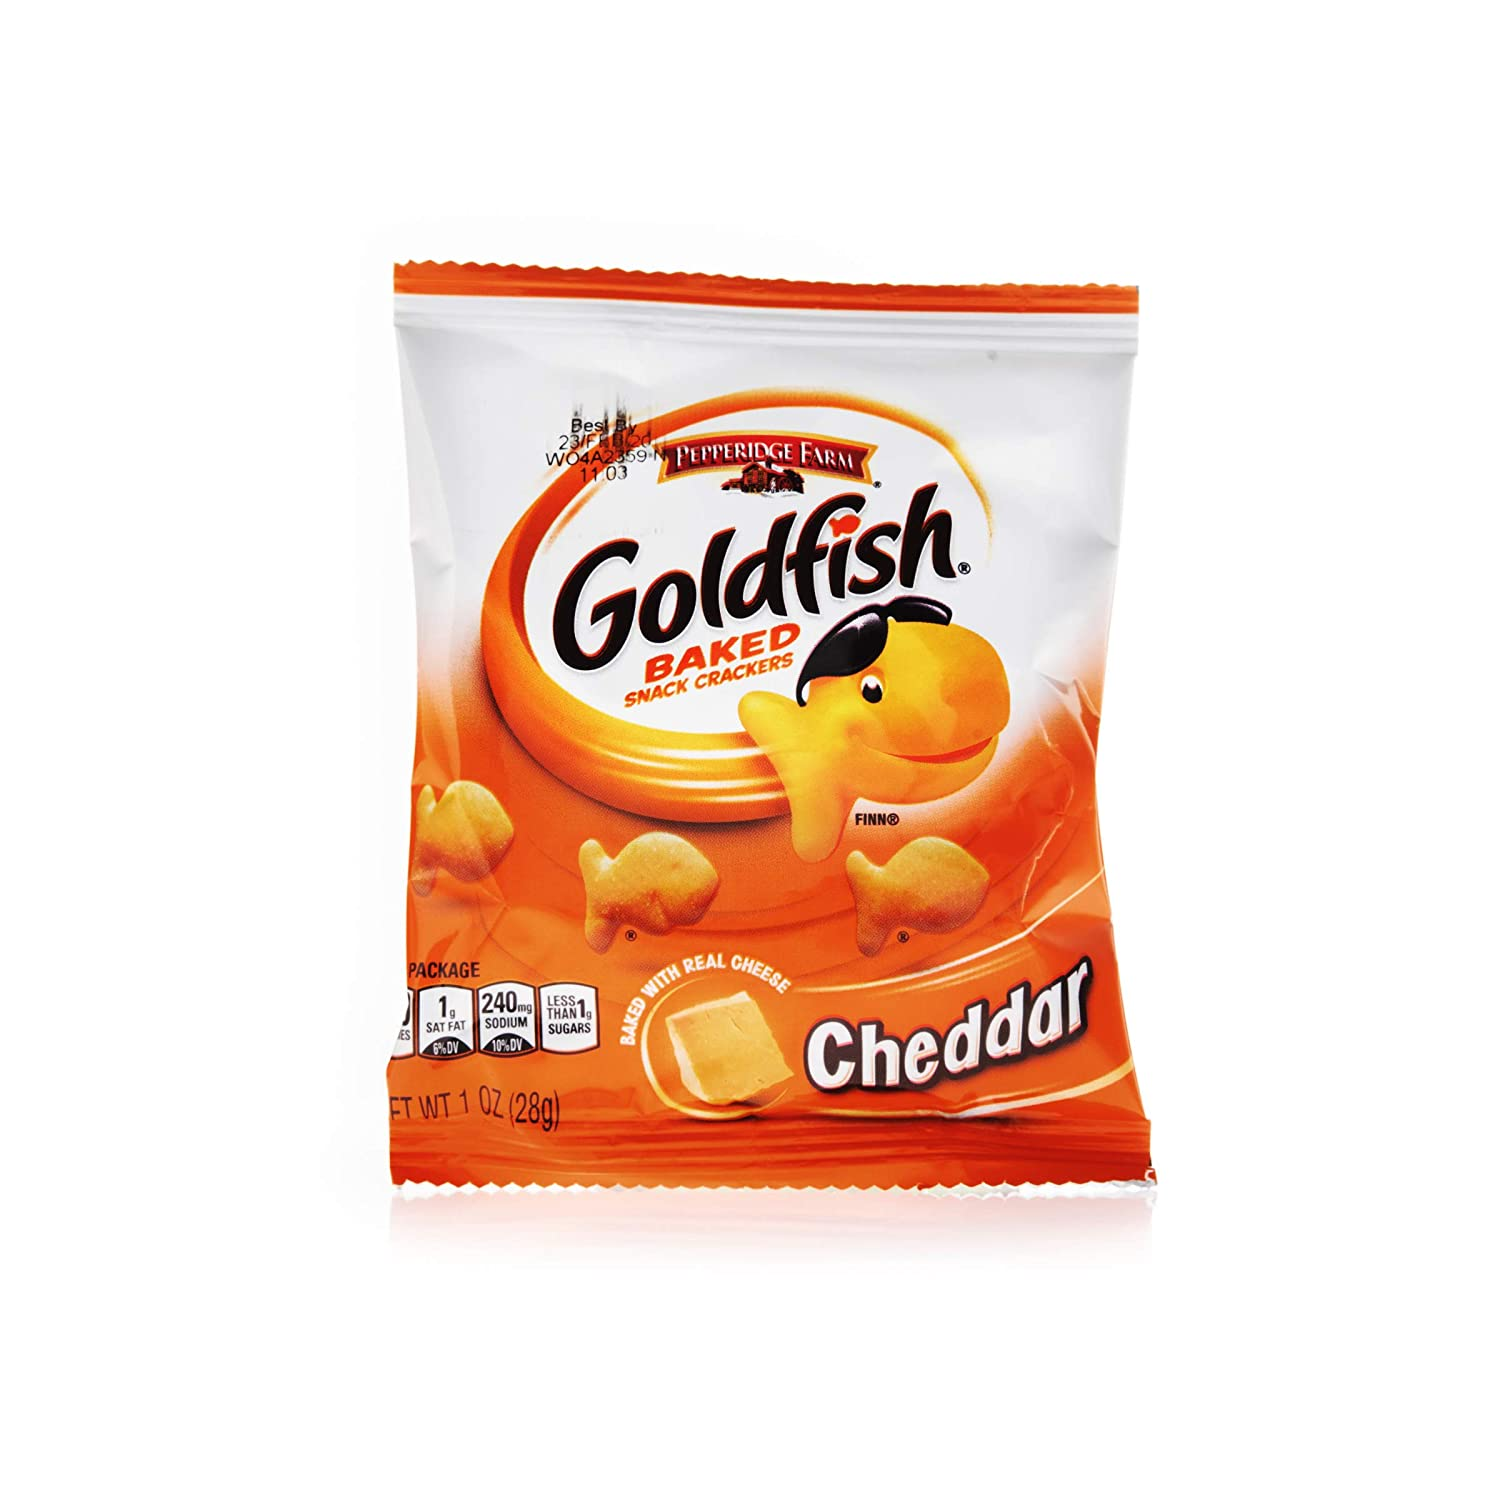 Pepperidge Farm Goldfish Baked Snack Crackers, Cheddar Cheese, 1 Ounce, Pack of 60